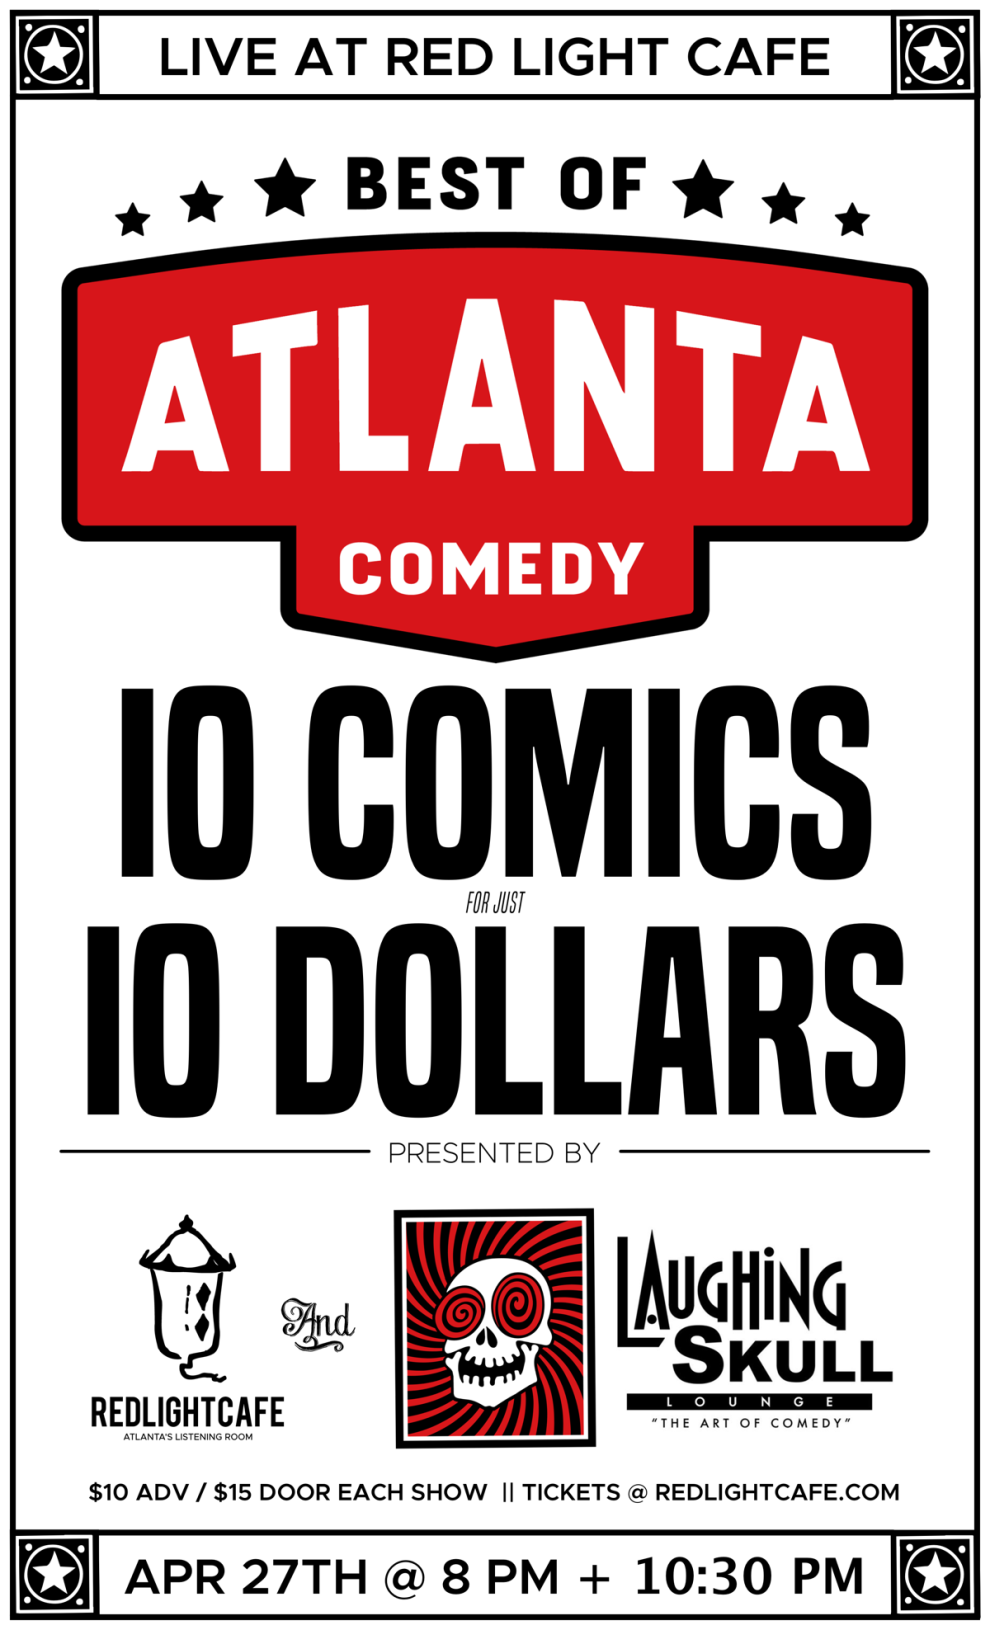 Best Of Atlanta Comedy At Red Light Cafe Presented By Laughing Skull Lounge Atlanta Ga Apr 27 2019 Poster 1200